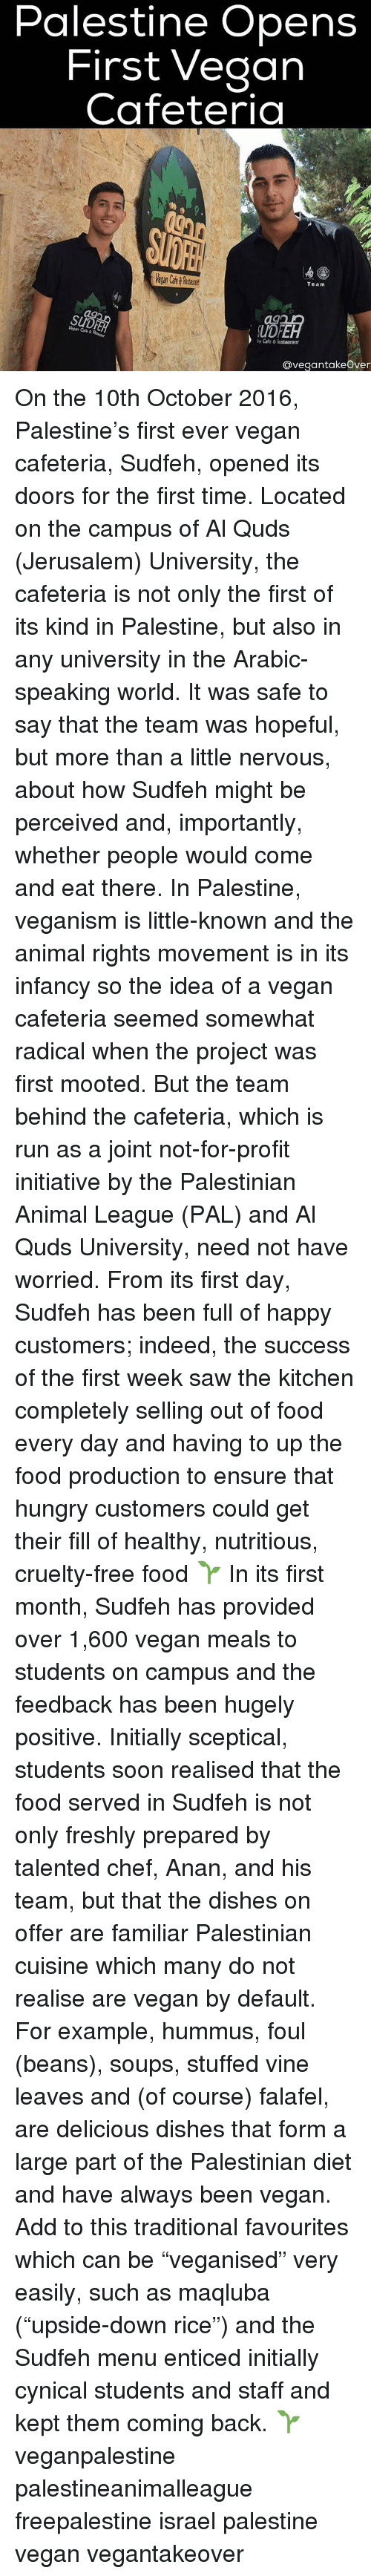 "Memes, Cynical, and Dish: Palestine Opens  First Vegan  Cafeteria  Team  Vegan Cafe 6  Cafe &lestaurant  Ovegantakeover On the 10th October 2016, Palestine's first ever vegan cafeteria, Sudfeh, opened its doors for the first time. Located on the campus of Al Quds (Jerusalem) University, the cafeteria is not only the first of its kind in Palestine, but also in any university in the Arabic-speaking world. It was safe to say that the team was hopeful, but more than a little nervous, about how Sudfeh might be perceived and, importantly, whether people would come and eat there. In Palestine, veganism is little-known and the animal rights movement is in its infancy so the idea of a vegan cafeteria seemed somewhat radical when the project was first mooted. But the team behind the cafeteria, which is run as a joint not-for-profit initiative by the Palestinian Animal League (PAL) and Al Quds University, need not have worried. From its first day, Sudfeh has been full of happy customers; indeed, the success of the first week saw the kitchen completely selling out of food every day and having to up the food production to ensure that hungry customers could get their fill of healthy, nutritious, cruelty-free food 🌱 In its first month, Sudfeh has provided over 1,600 vegan meals to students on campus and the feedback has been hugely positive. Initially sceptical, students soon realised that the food served in Sudfeh is not only freshly prepared by talented chef, Anan, and his team, but that the dishes on offer are familiar Palestinian cuisine which many do not realise are vegan by default. For example, hummus, foul (beans), soups, stuffed vine leaves and (of course) falafel, are delicious dishes that form a large part of the Palestinian diet and have always been vegan. Add to this traditional favourites which can be ""veganised"" very easily, such as maqluba (""upside-down rice"") and the Sudfeh menu enticed initially cynical students and staff and kept them coming back. 🌱 veganpalestine palestineanimalleague freepalestine israel palestine vegan vegantakeover"